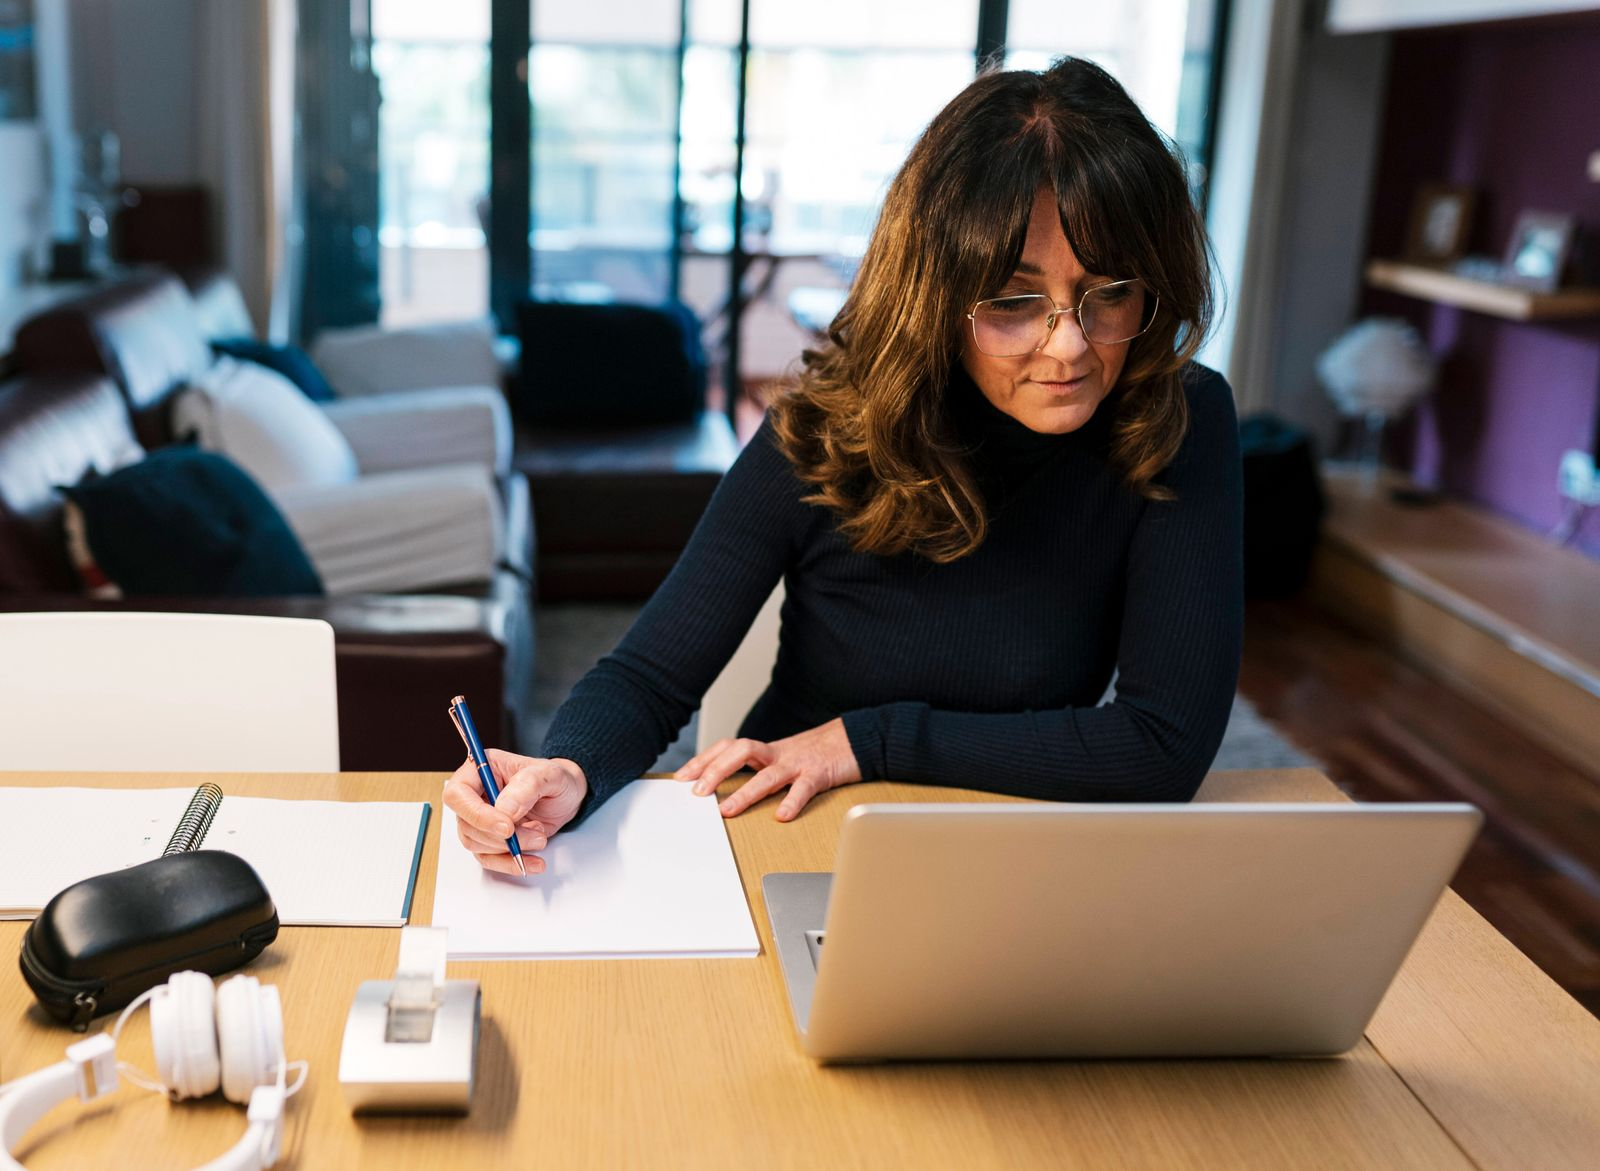 Mature woman writing in paper while sitting by laptop at home model released Symbolfoto property released EGAF02015